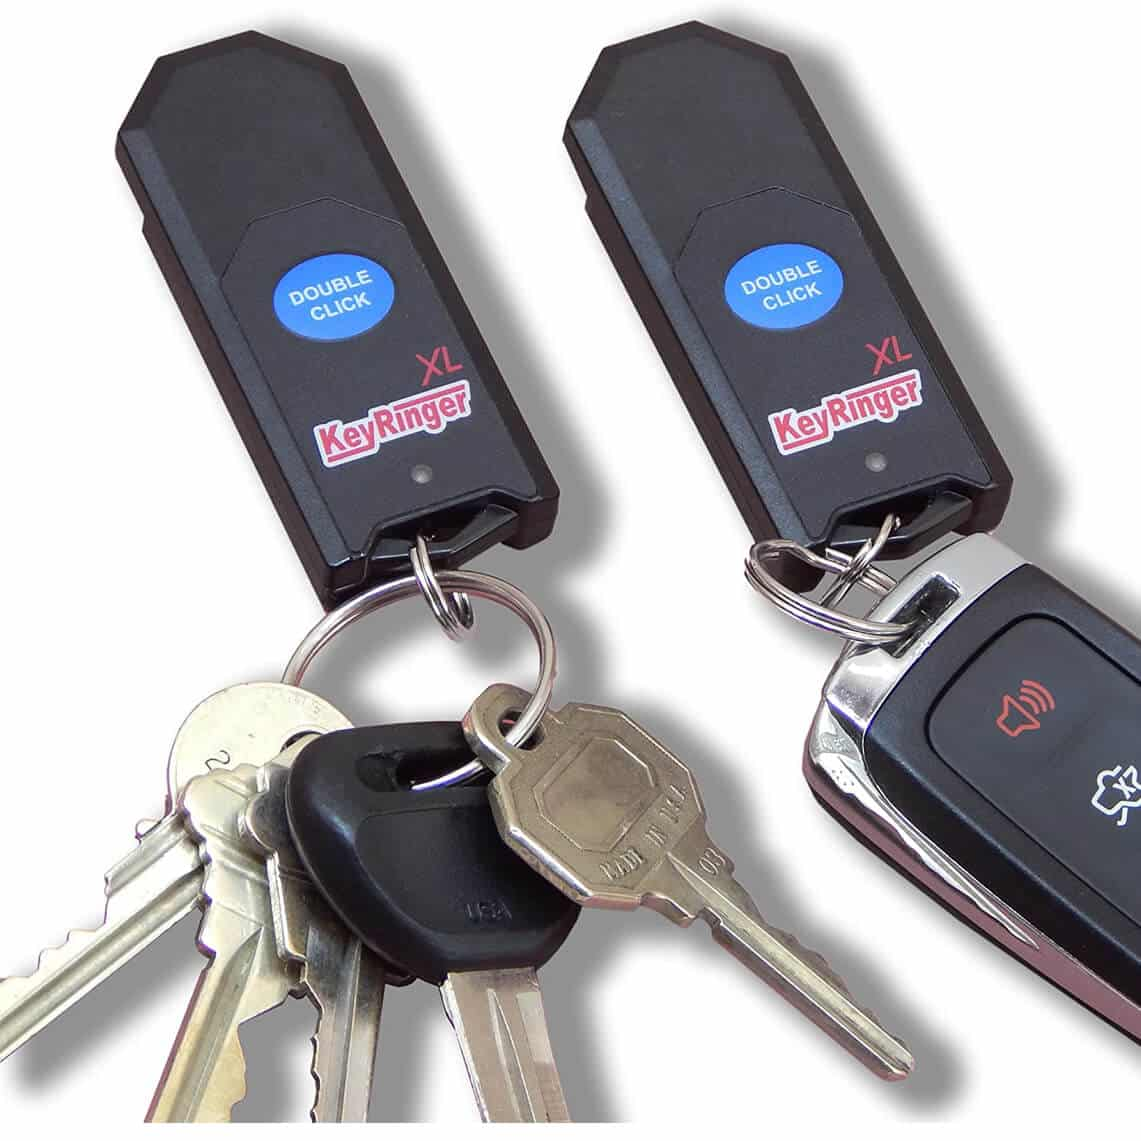 Key Ringer Key Finder